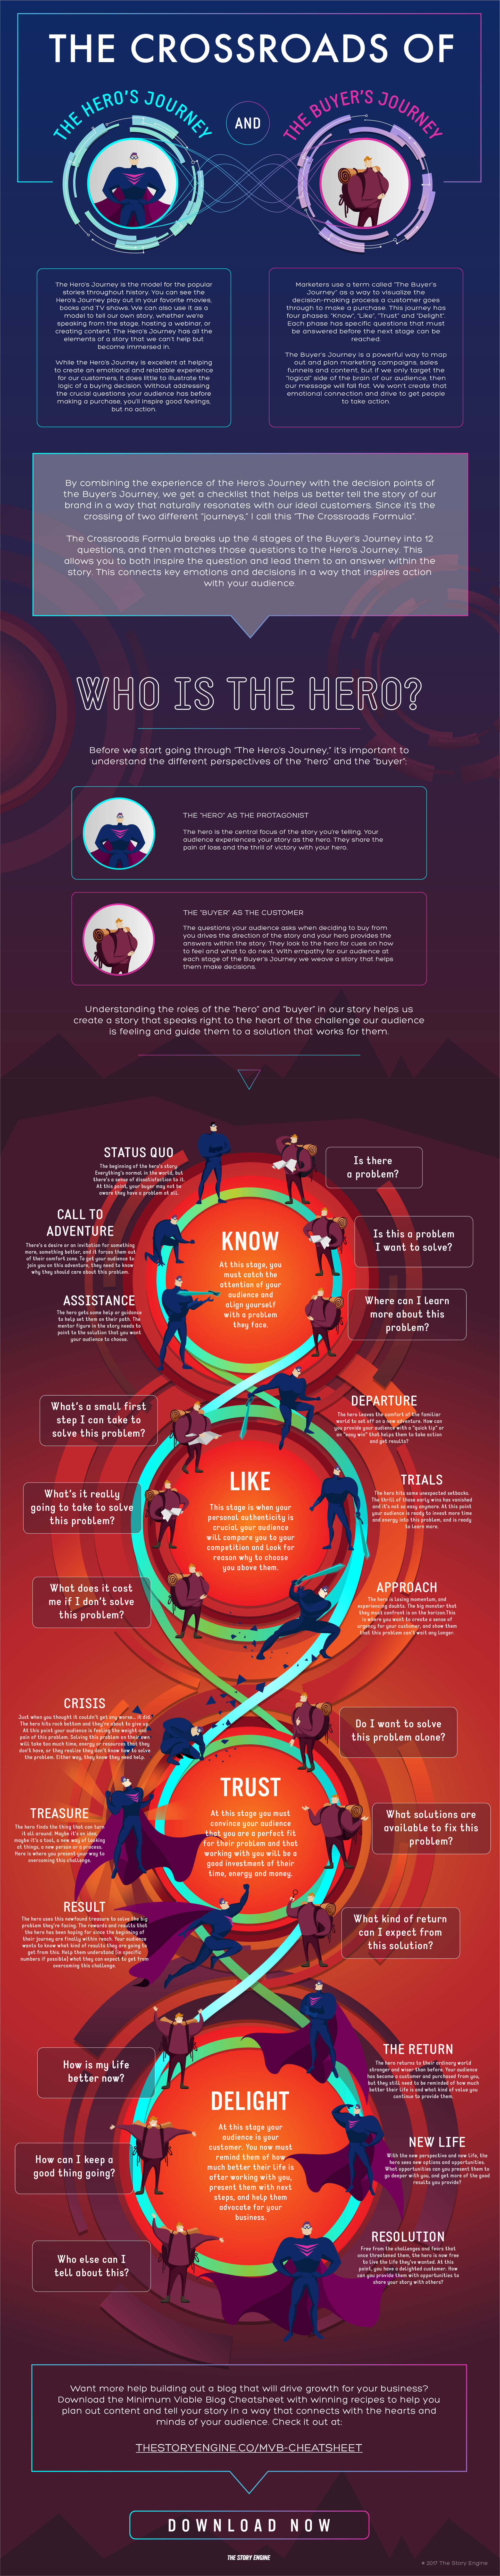 the crossroads of the hero's journey and the buyer's journey